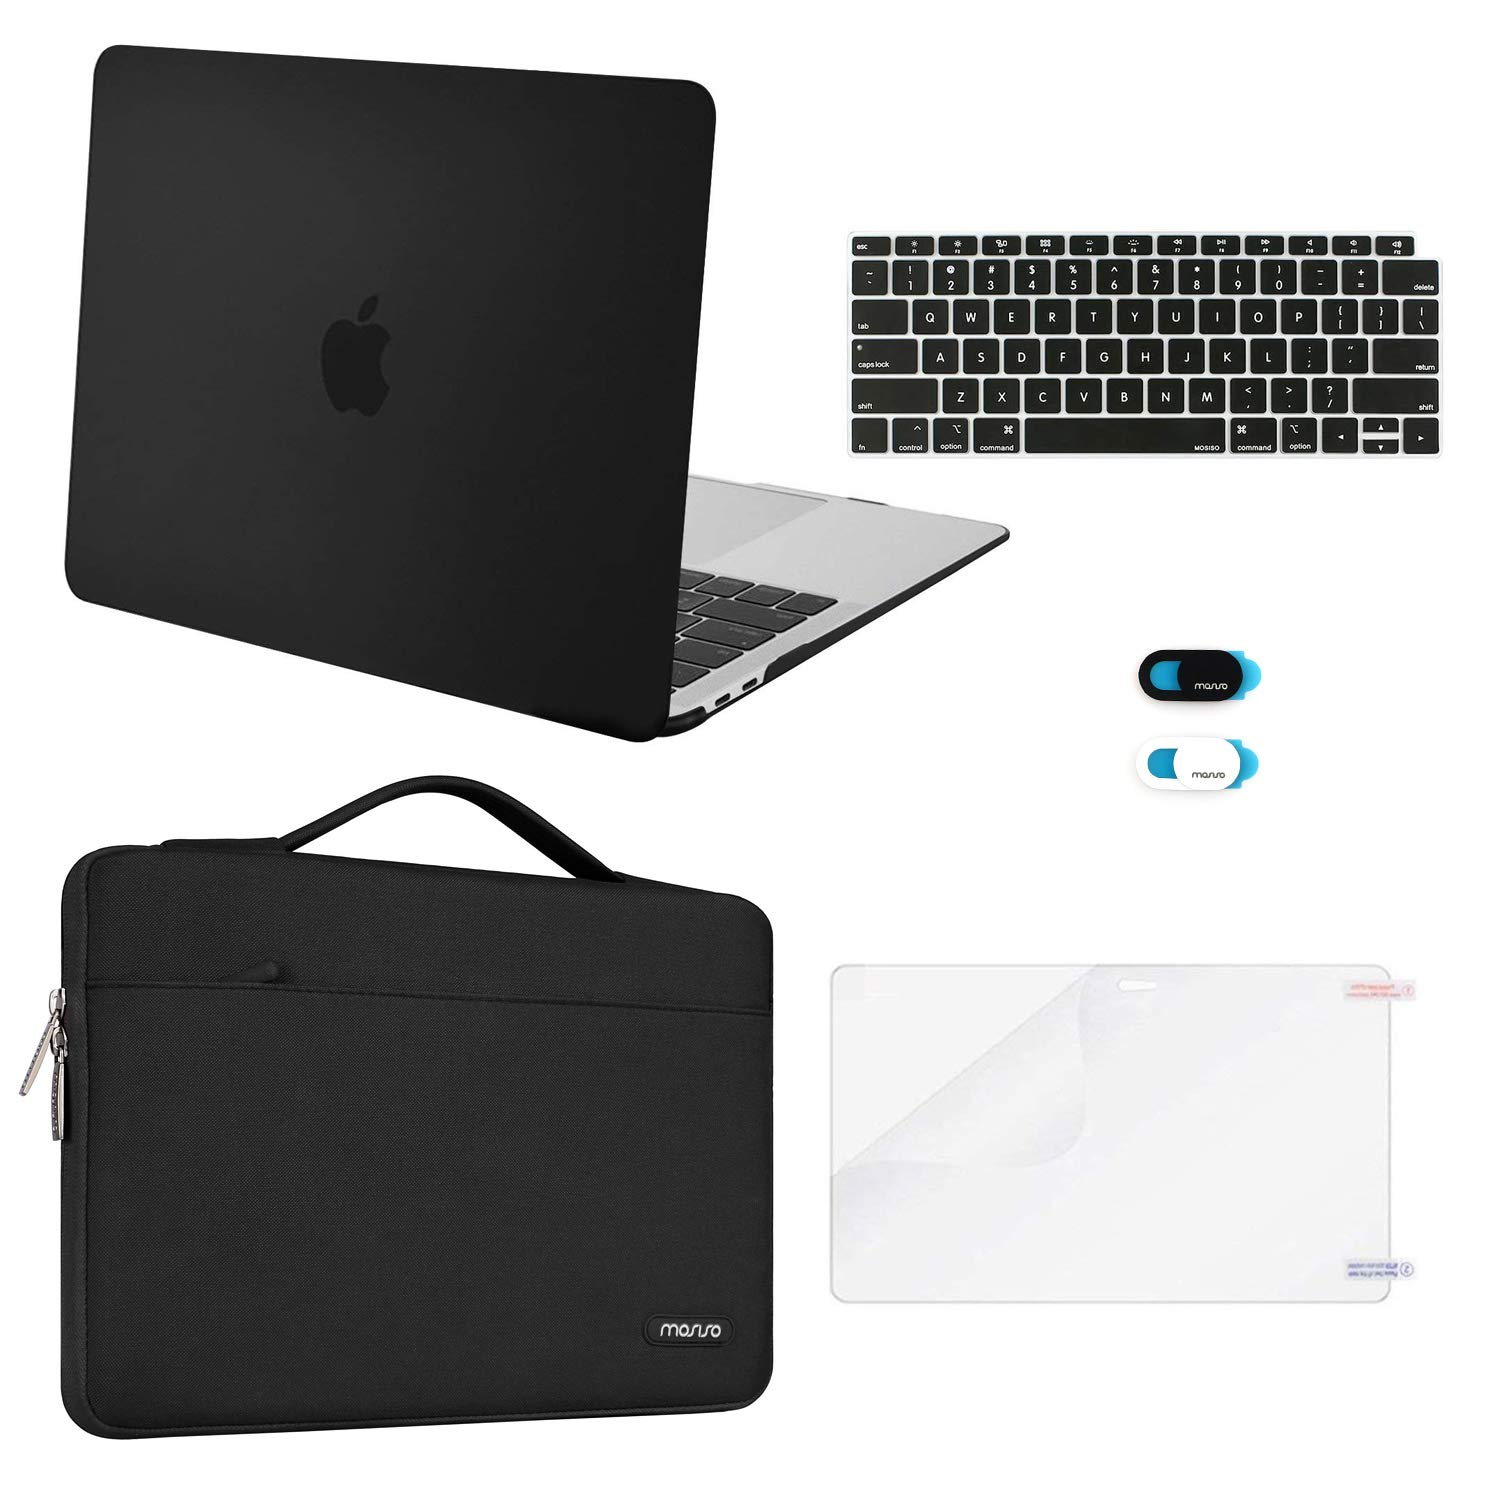 MOSISO MacBook Air 13 inch Case 2019 2018 Release A1932 Retina Display, Plastic Hard Shell & Sleeve Bag & Keyboard Cover & Webcam Cover & Screen Protector Compatible with MacBook Air 13, Black by MOSISO